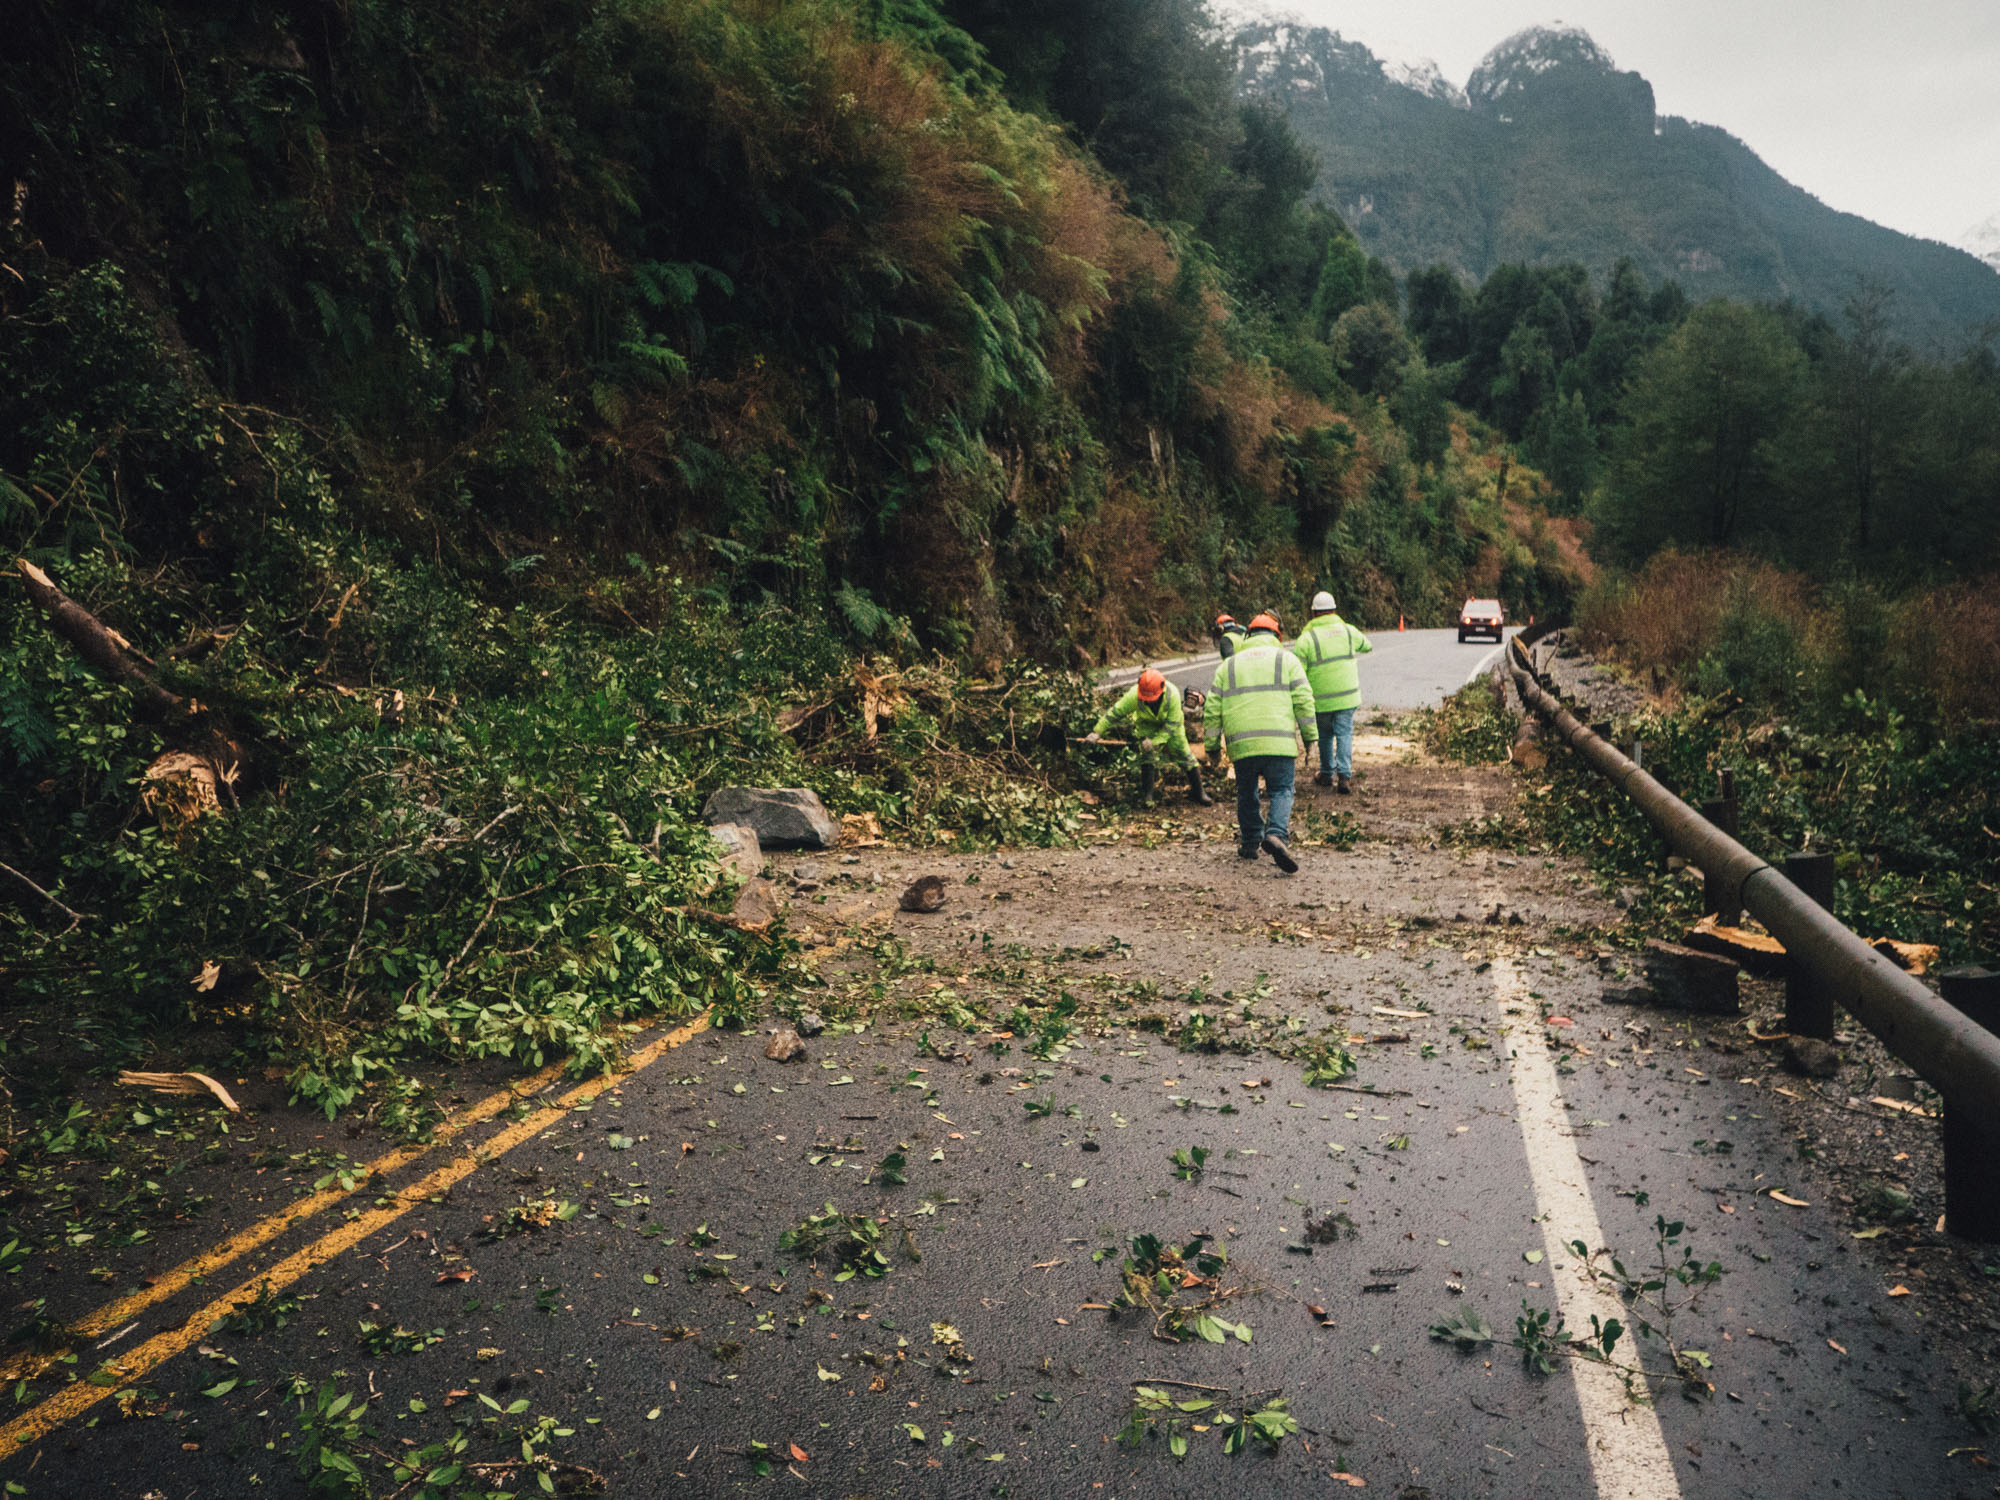 A dead tree had collapsed through the heavy rain fall and blocked the road.